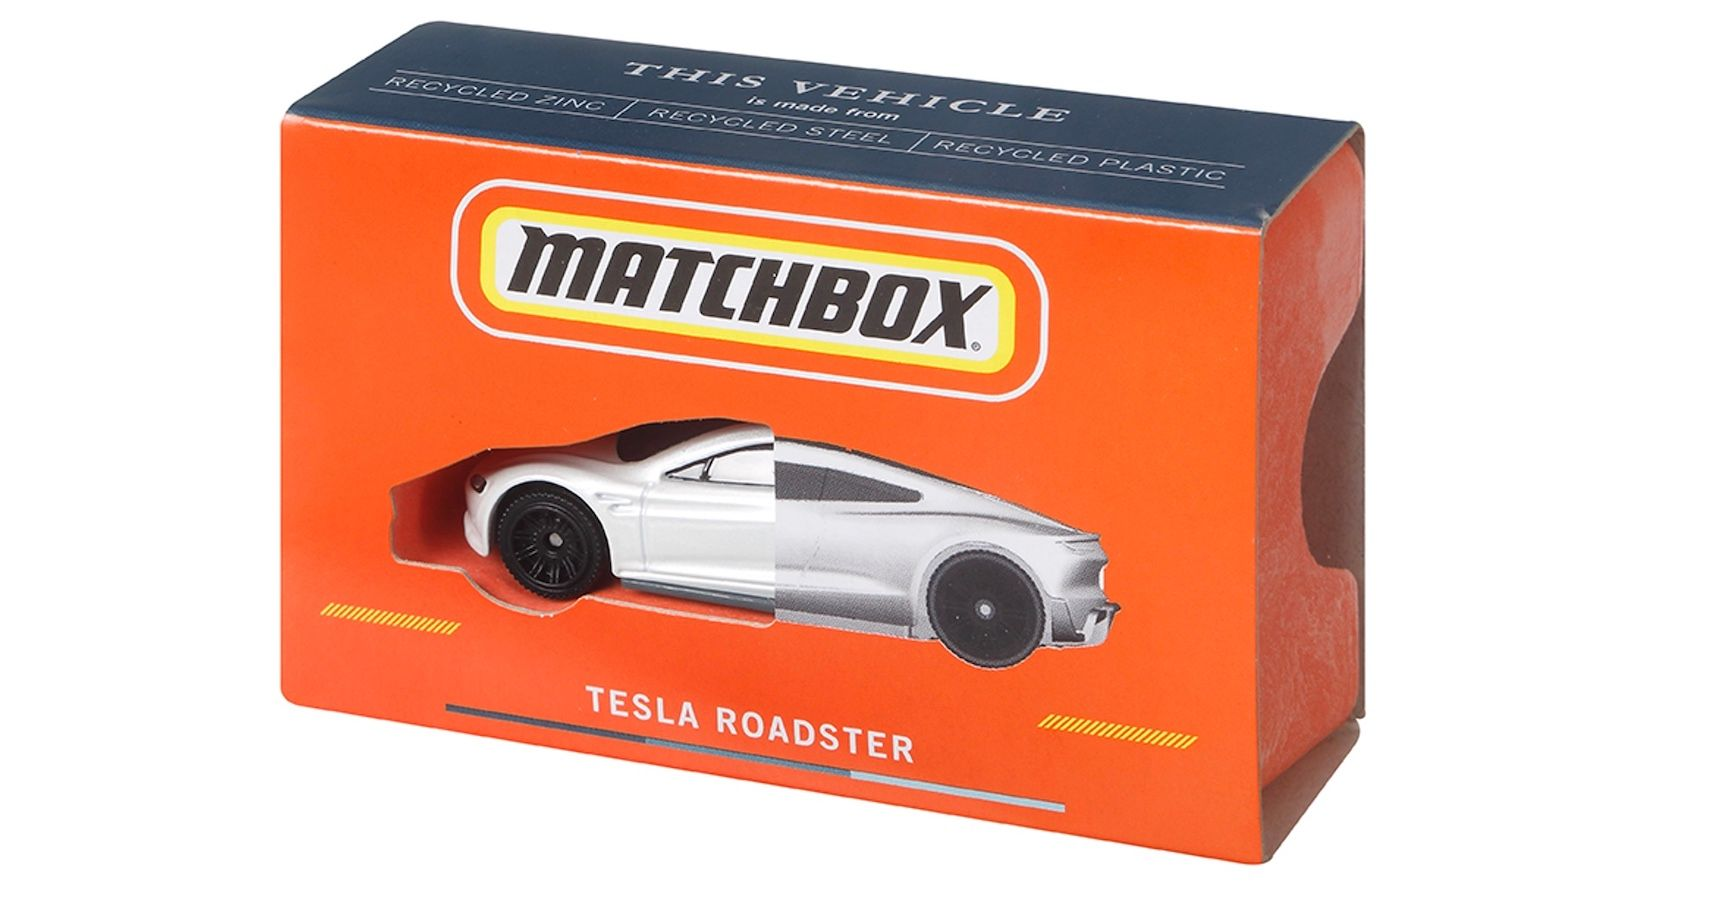 Matchbox Tesla Roadster Kicks Off Sustainable Future For Brand's Diecast Toys